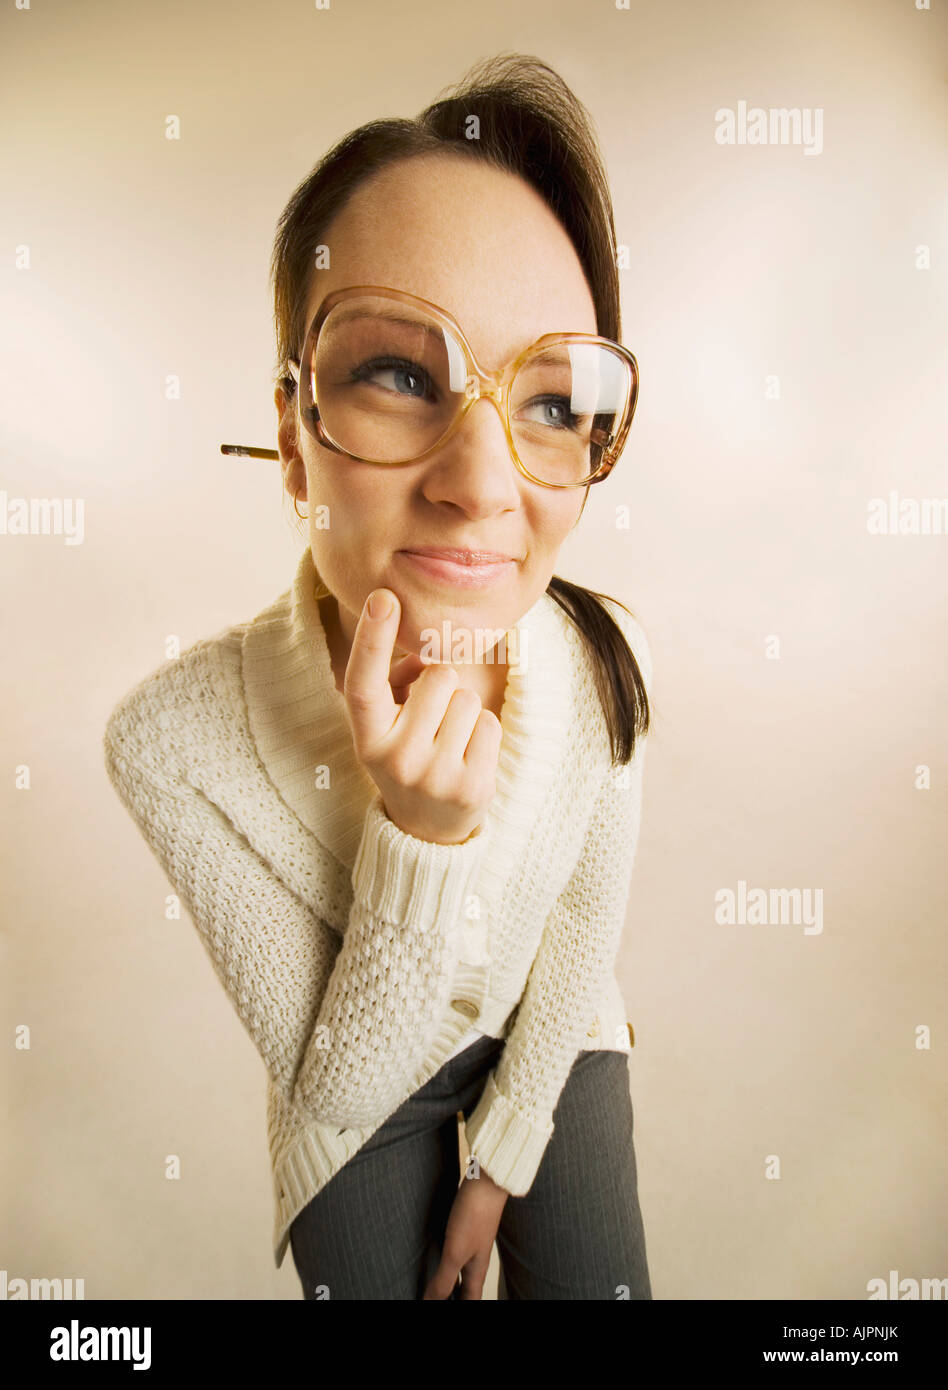 Wide-angle view of a woman wearing eyeglasses - Stock Image